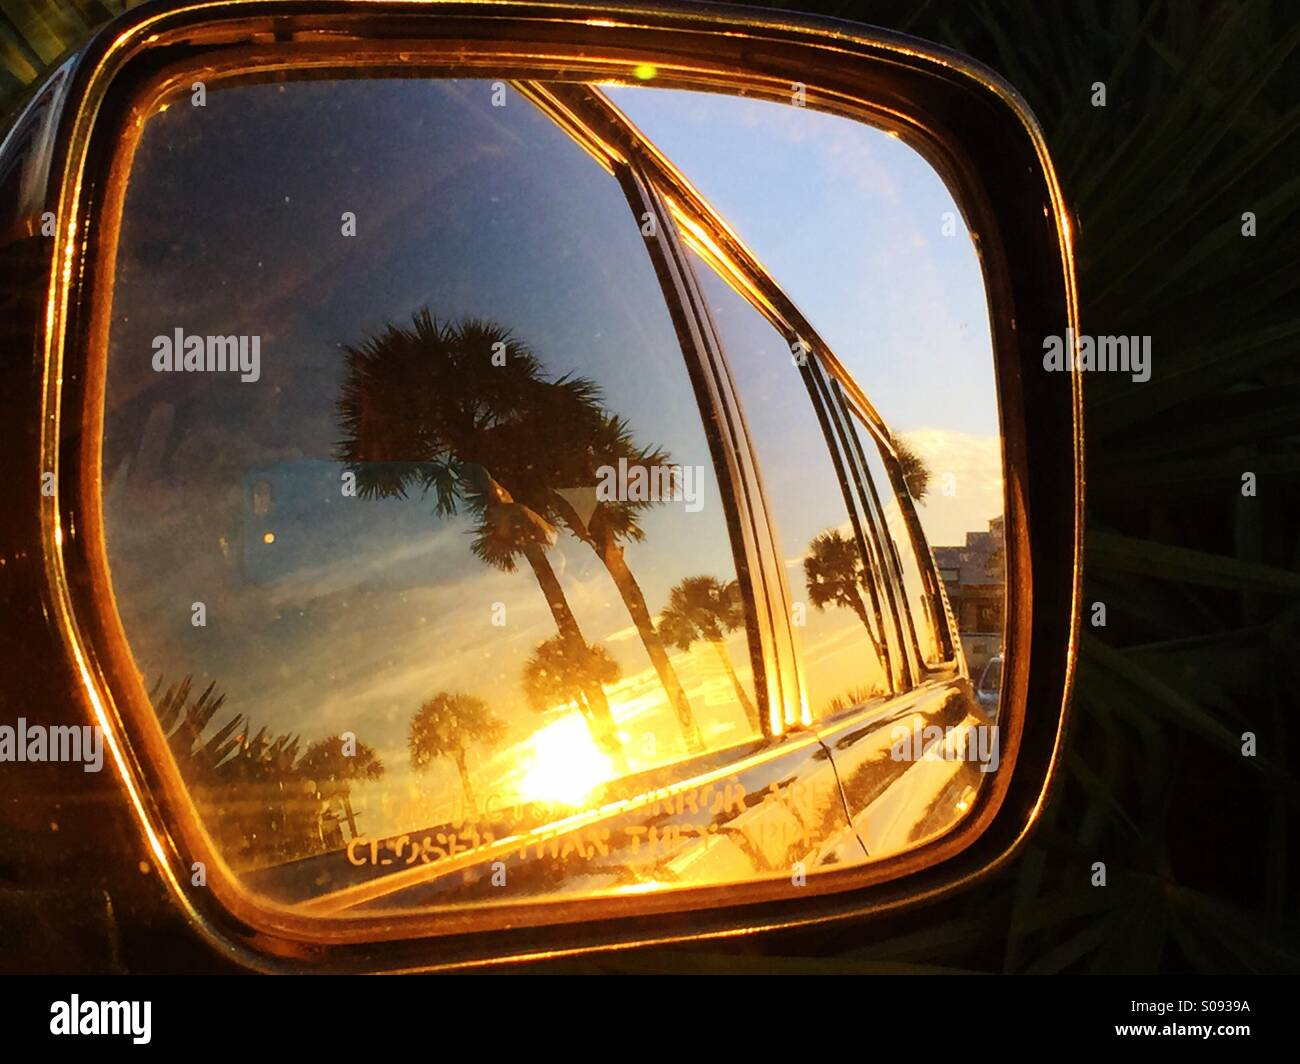 Palmetto trees are viewed in the rearview mirror of a car at sunset. - Stock Image